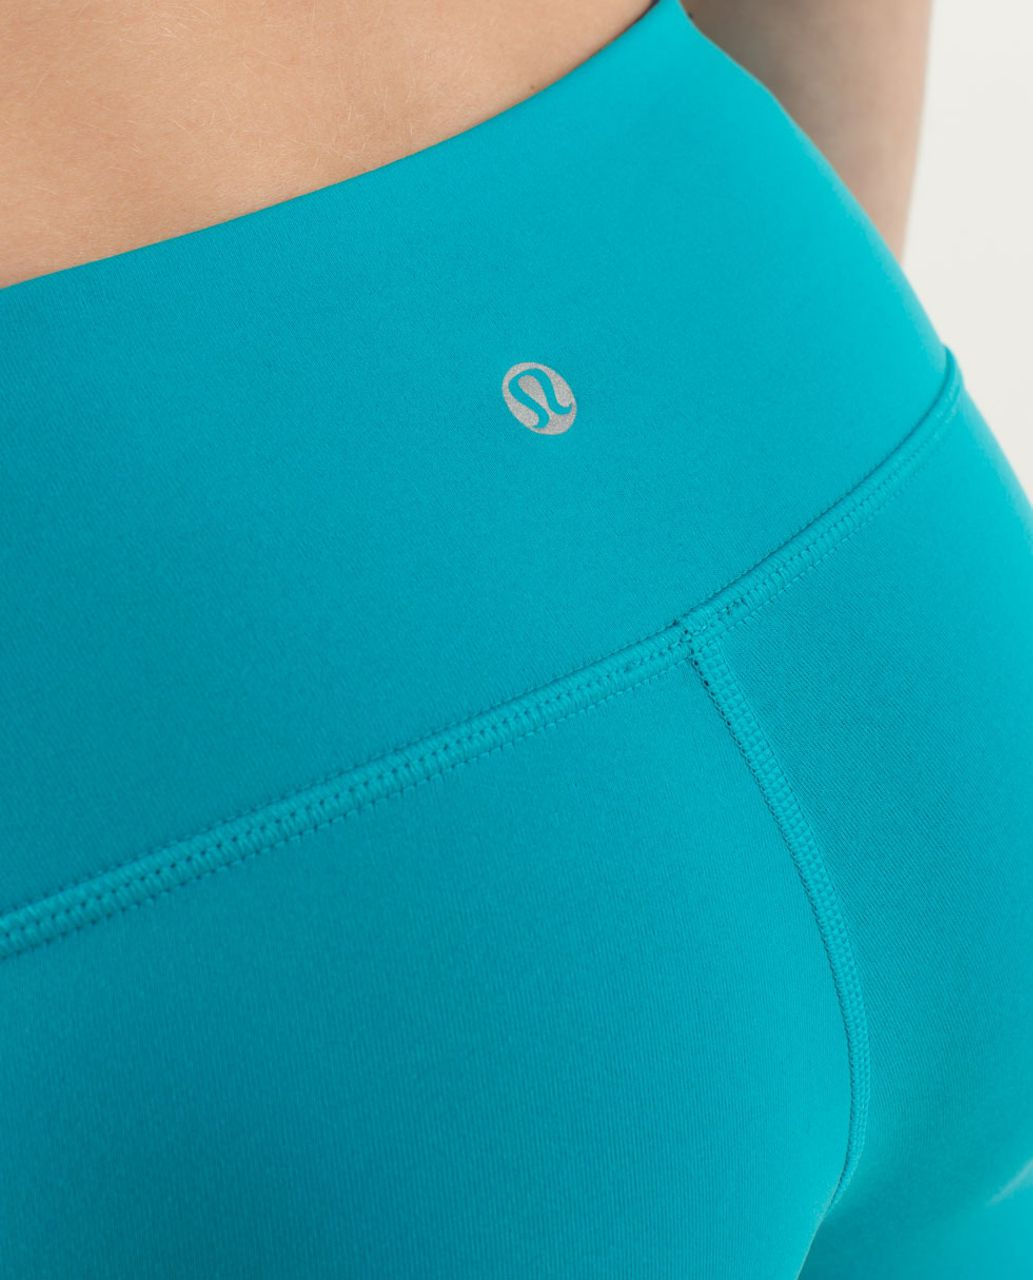 Lululemon Wunder Under Crop *Reversible - Inkwell / Surge